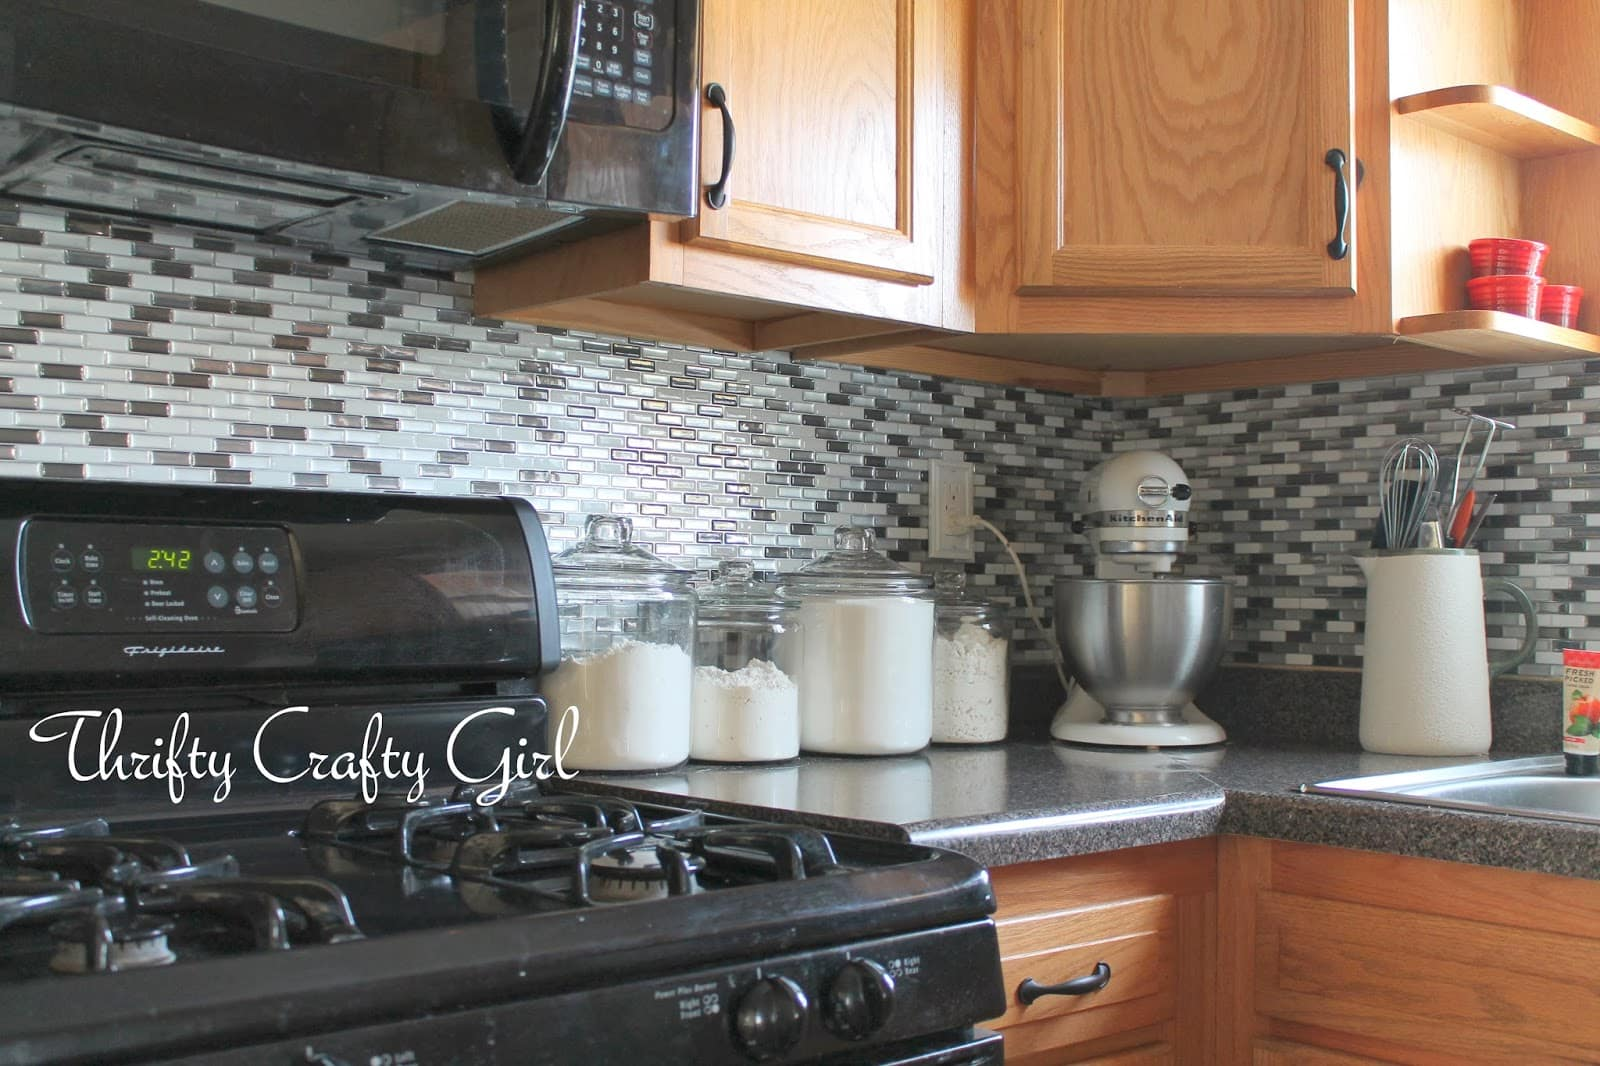 Peel-Stick Backsplash Tiles via Thrifty Crafty Girl